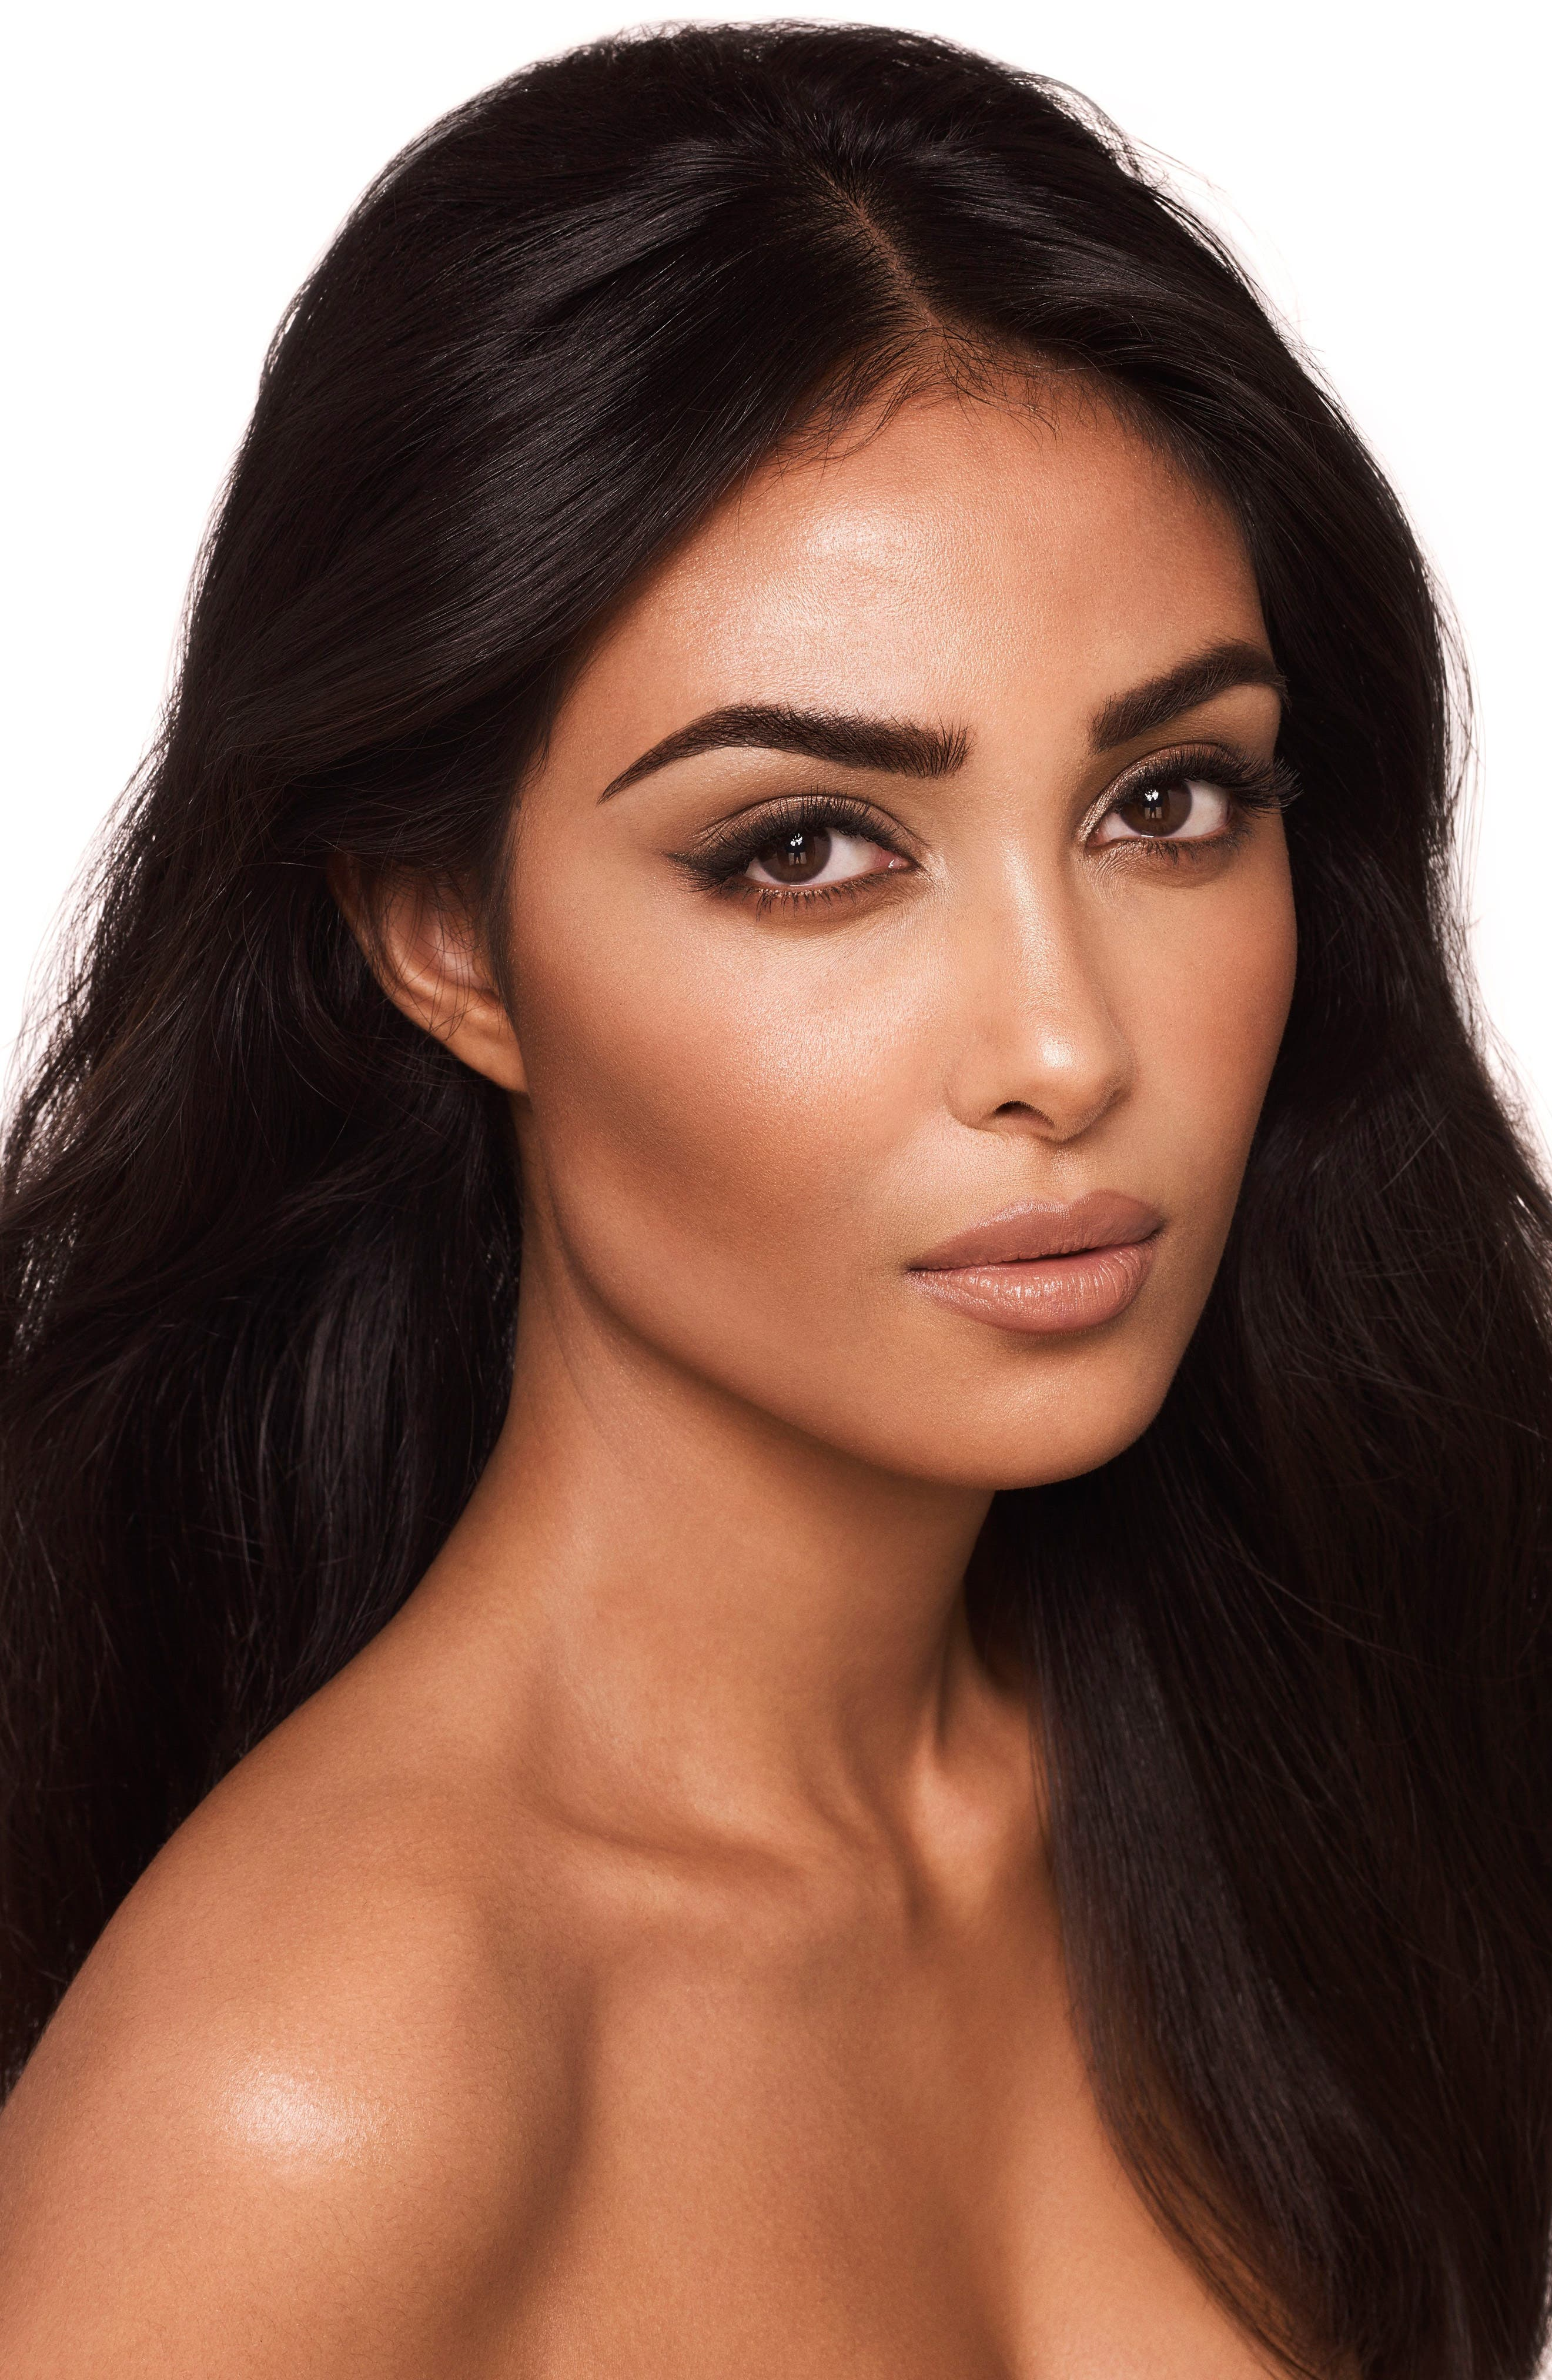 Charlotte Tilbury Supermodel Brow Lift Collection